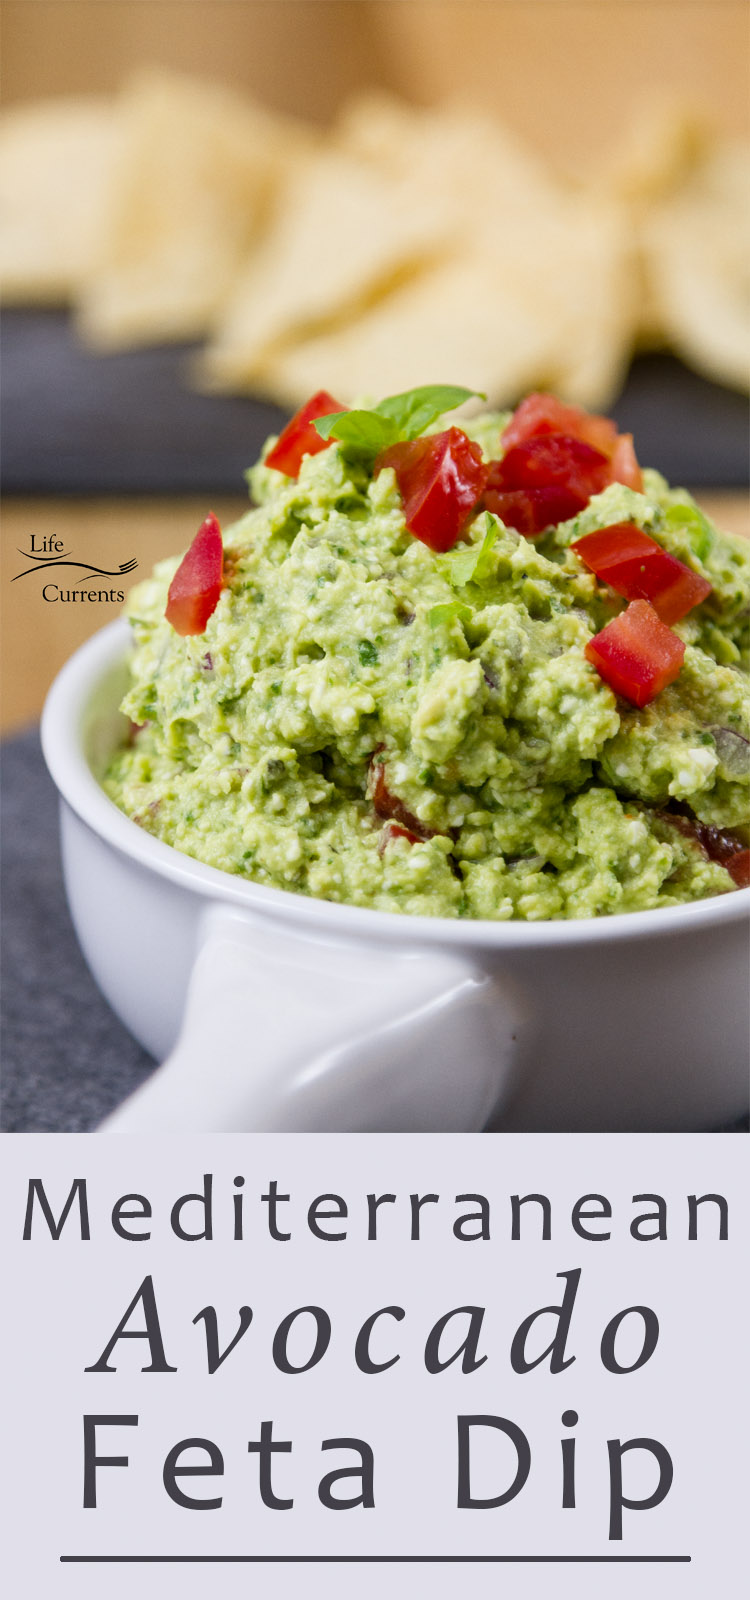 Smooth and creamy, this Mediterranean Avocado Feta Dip is filled with wonderful earthy basil and salty feta cheese. This dip will be welcome at your next party!